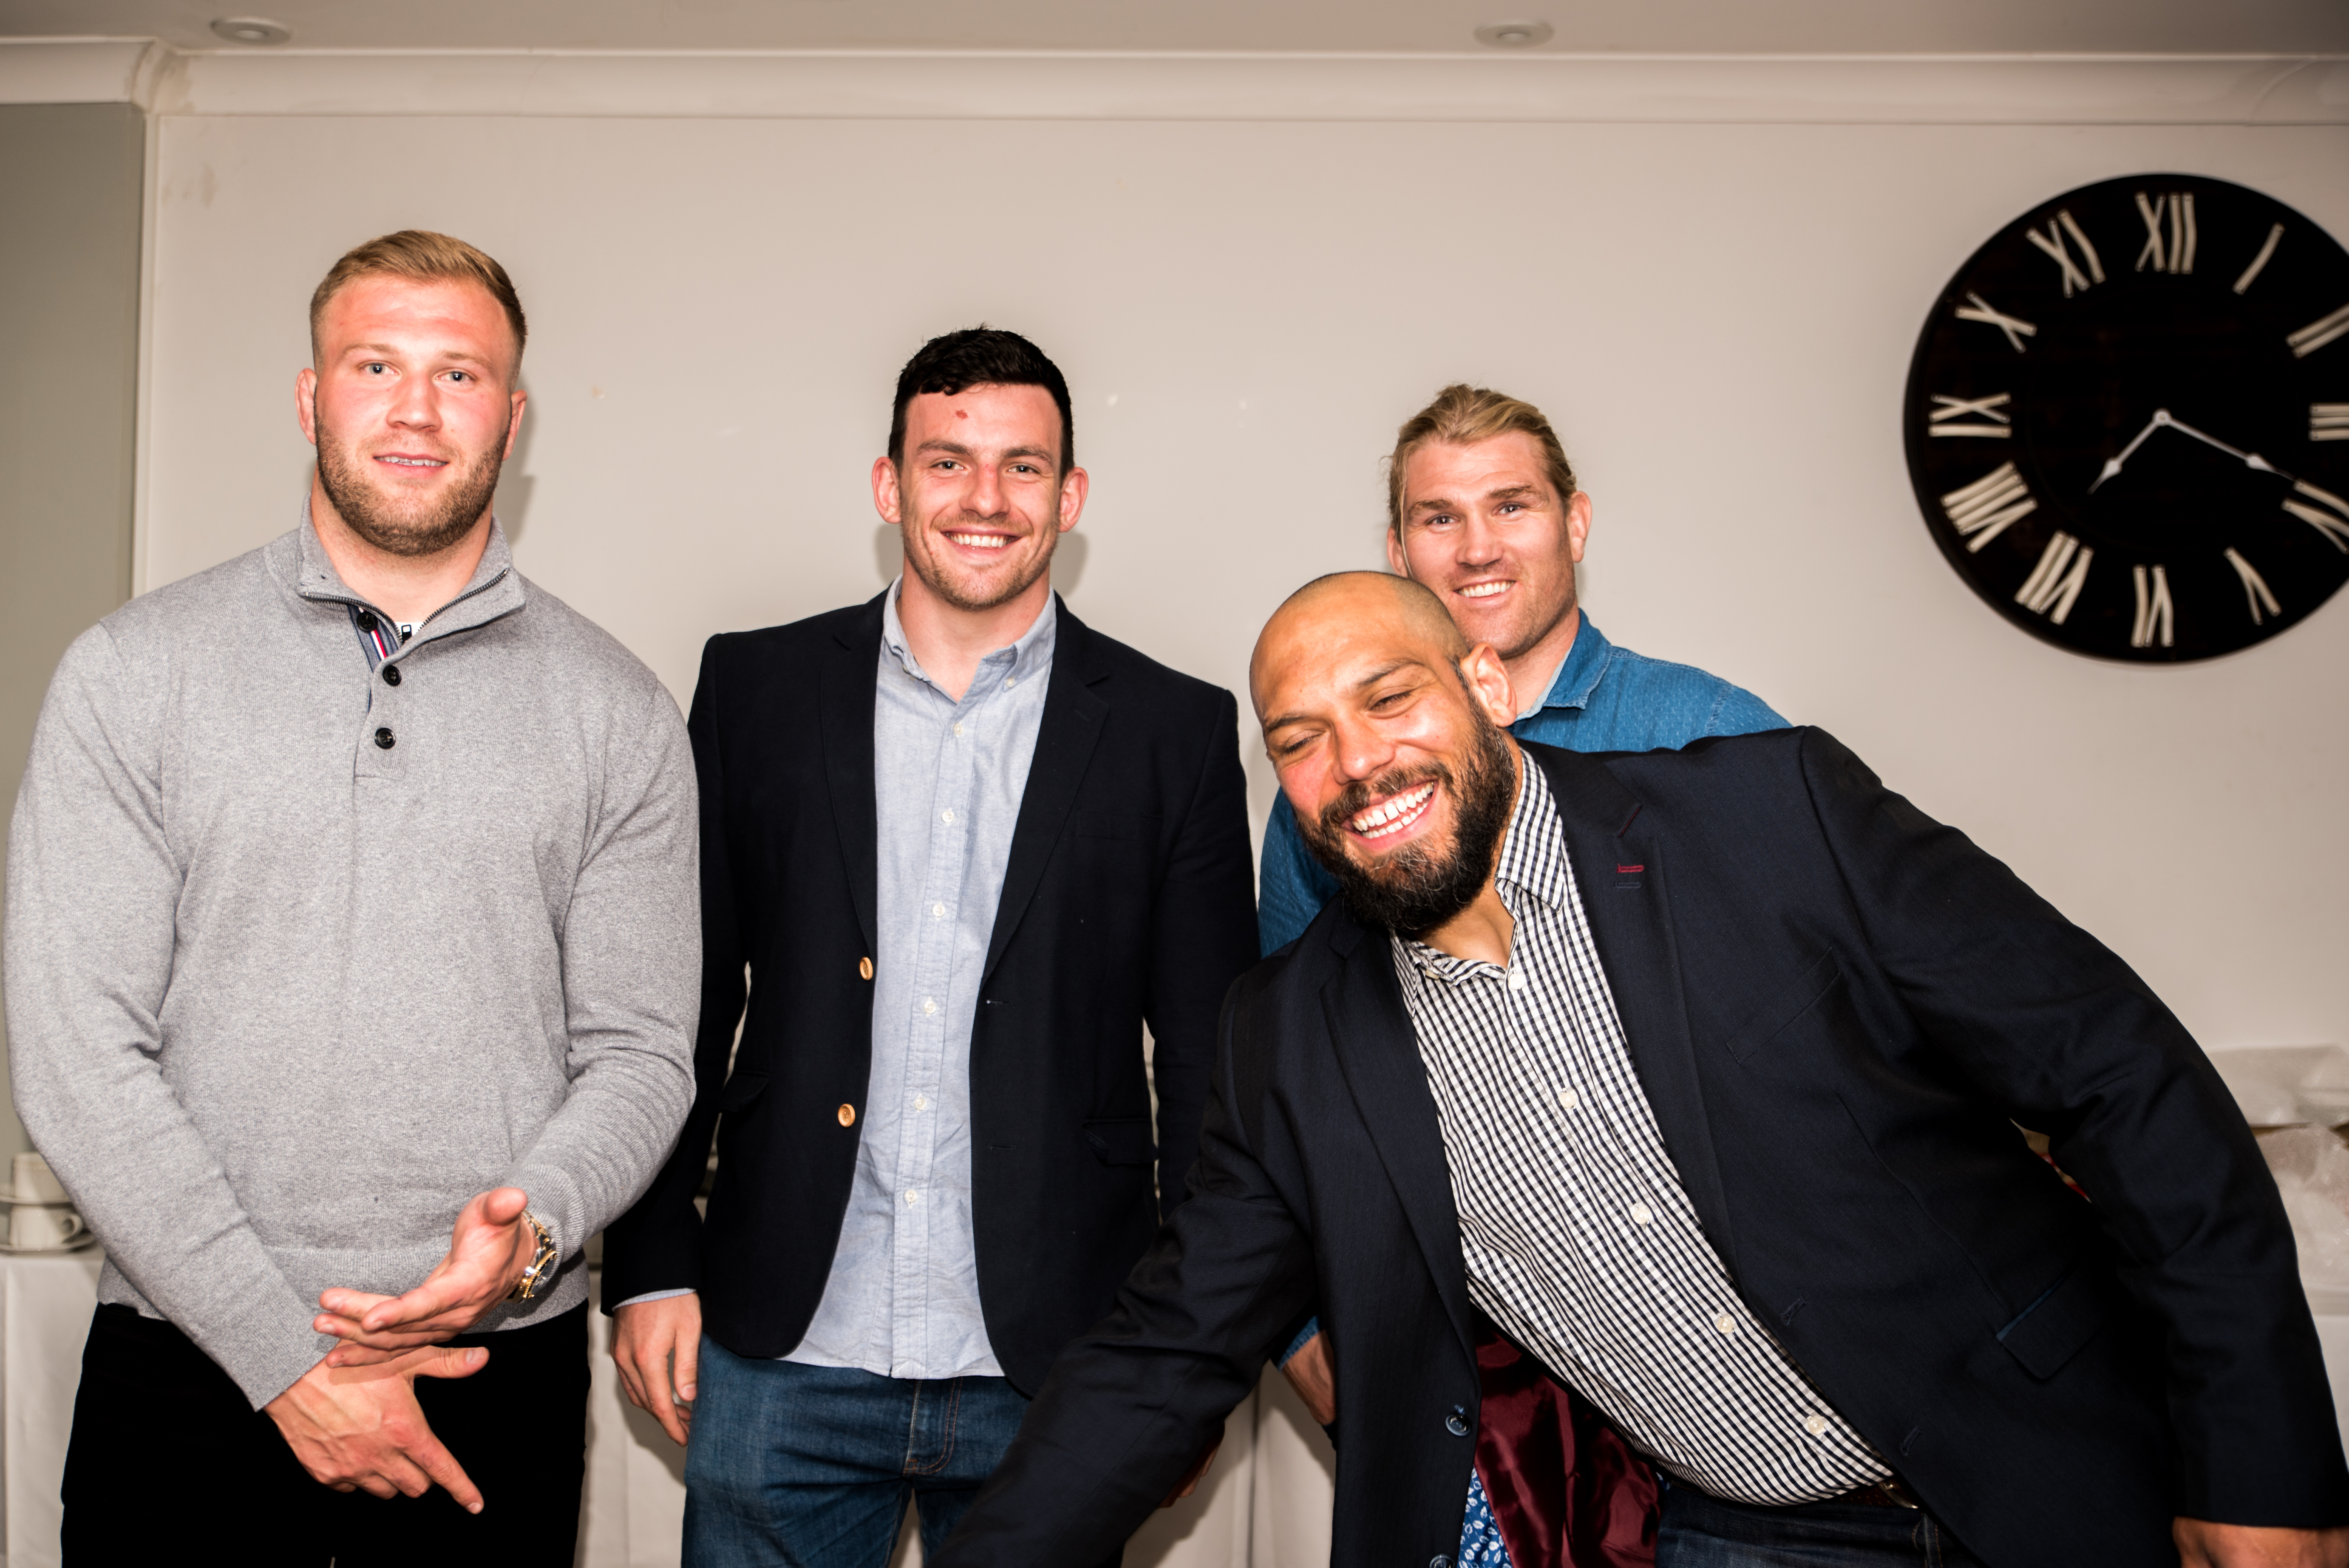 Aitch and Aitch Bee Richard Hibbard, Ross Moriarty, John Afoa, Matt Scott (12)